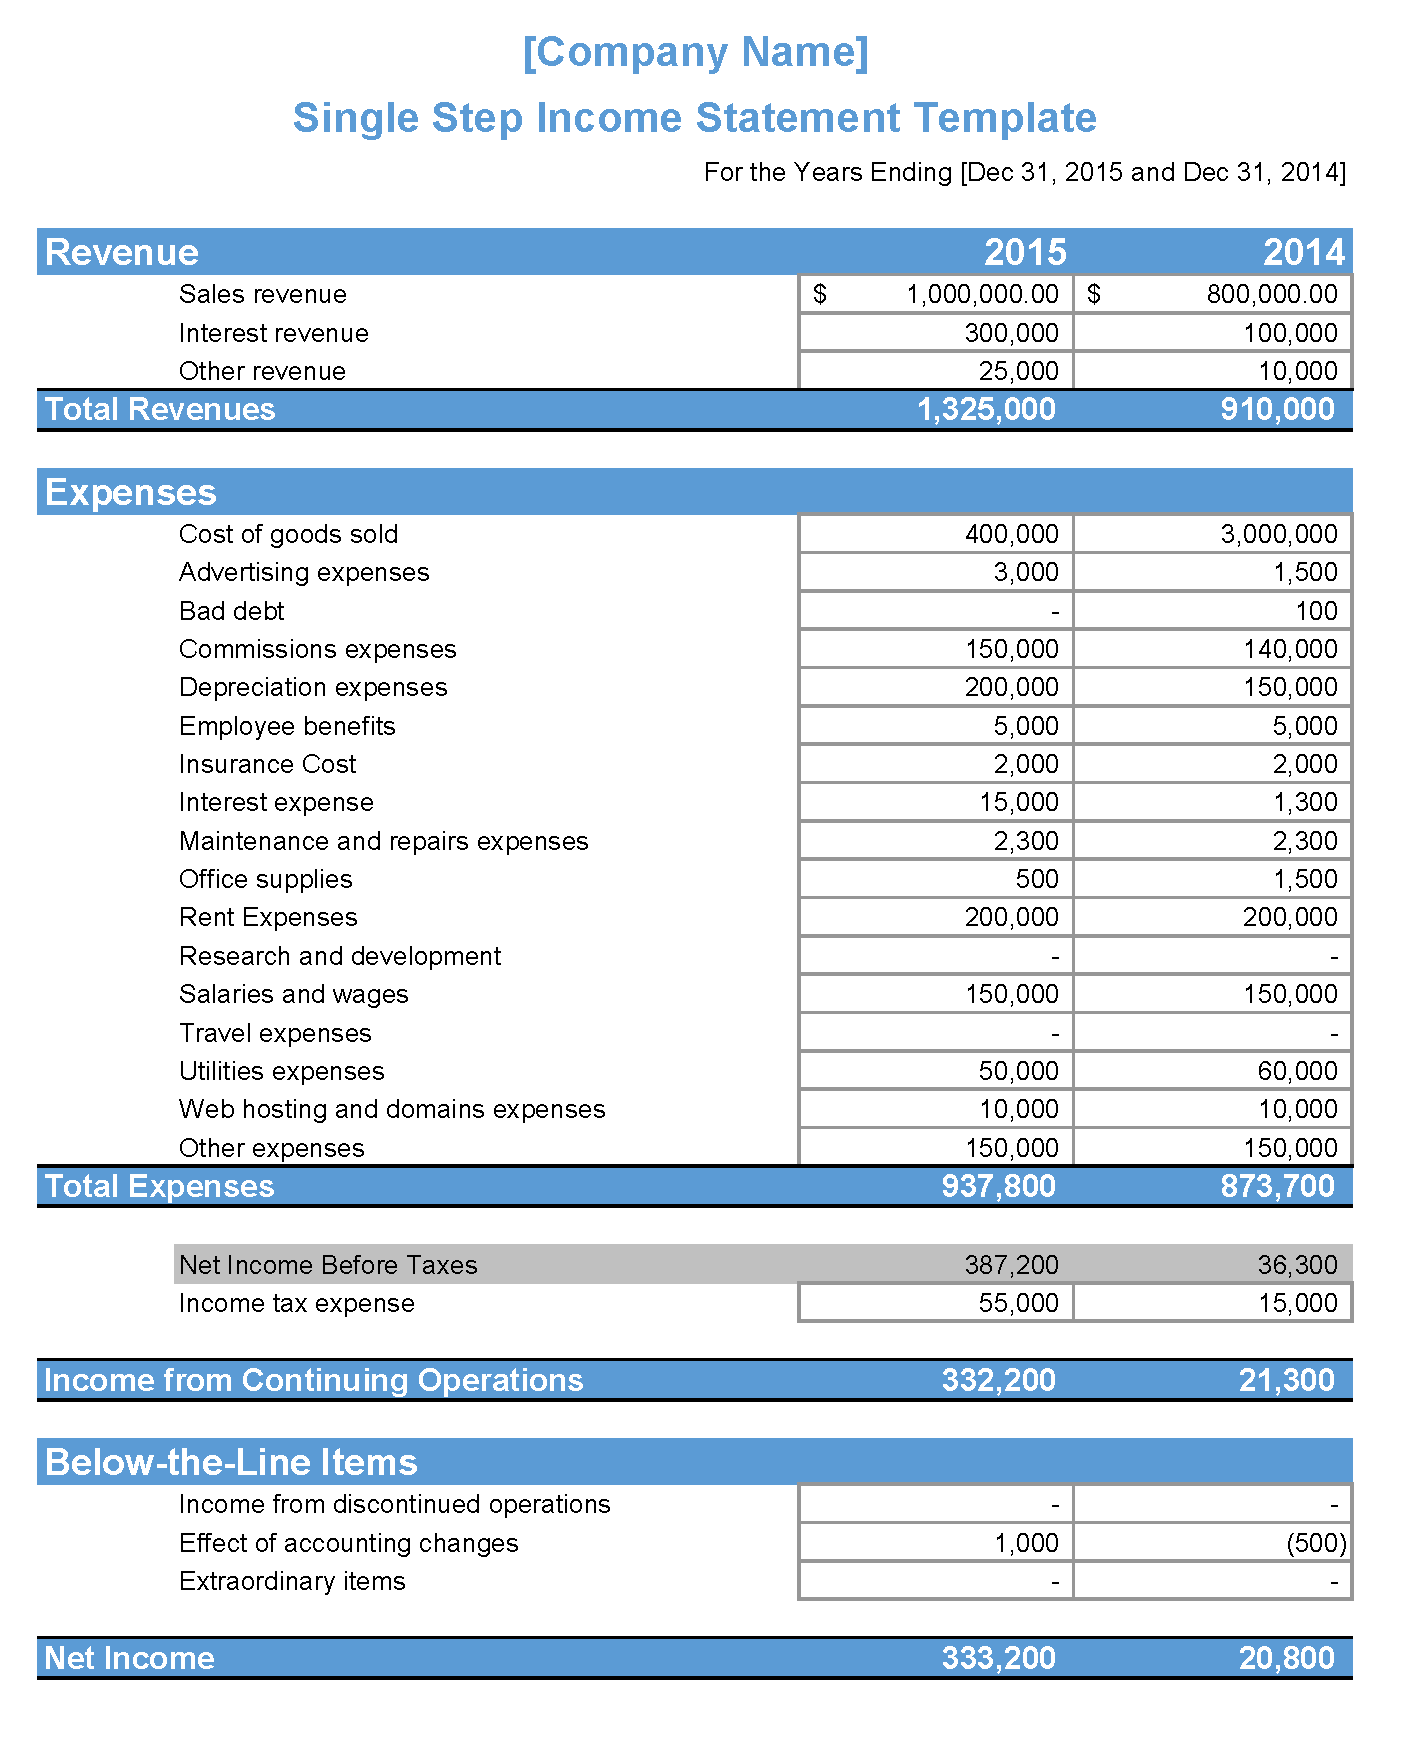 Income Statement: Definition, Types, Templates, Examples and